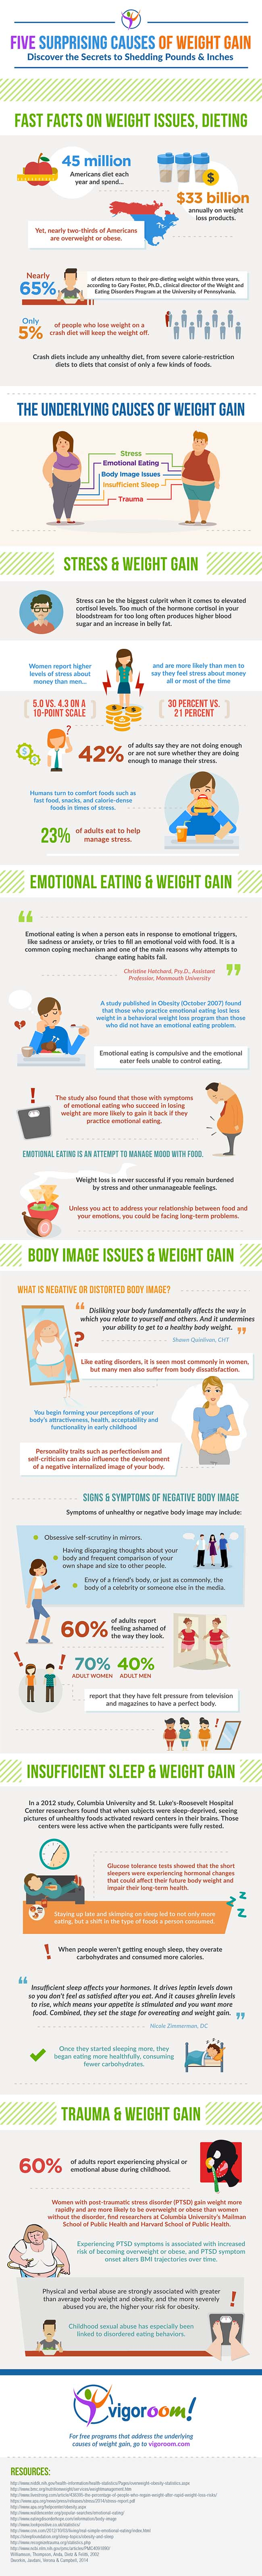 surprising causes of weight gain, suprising causes of weight gain, causes of weight gain in short period of time, causes of weight gain in stomach, causes of weight gain in men, causes of weight gain and bloating, causes of weight gain and fatigue, causes of weight gain during menopause, causes sudden weight gain, surprising hidden causes of weight gain, causes rapid weight gain,